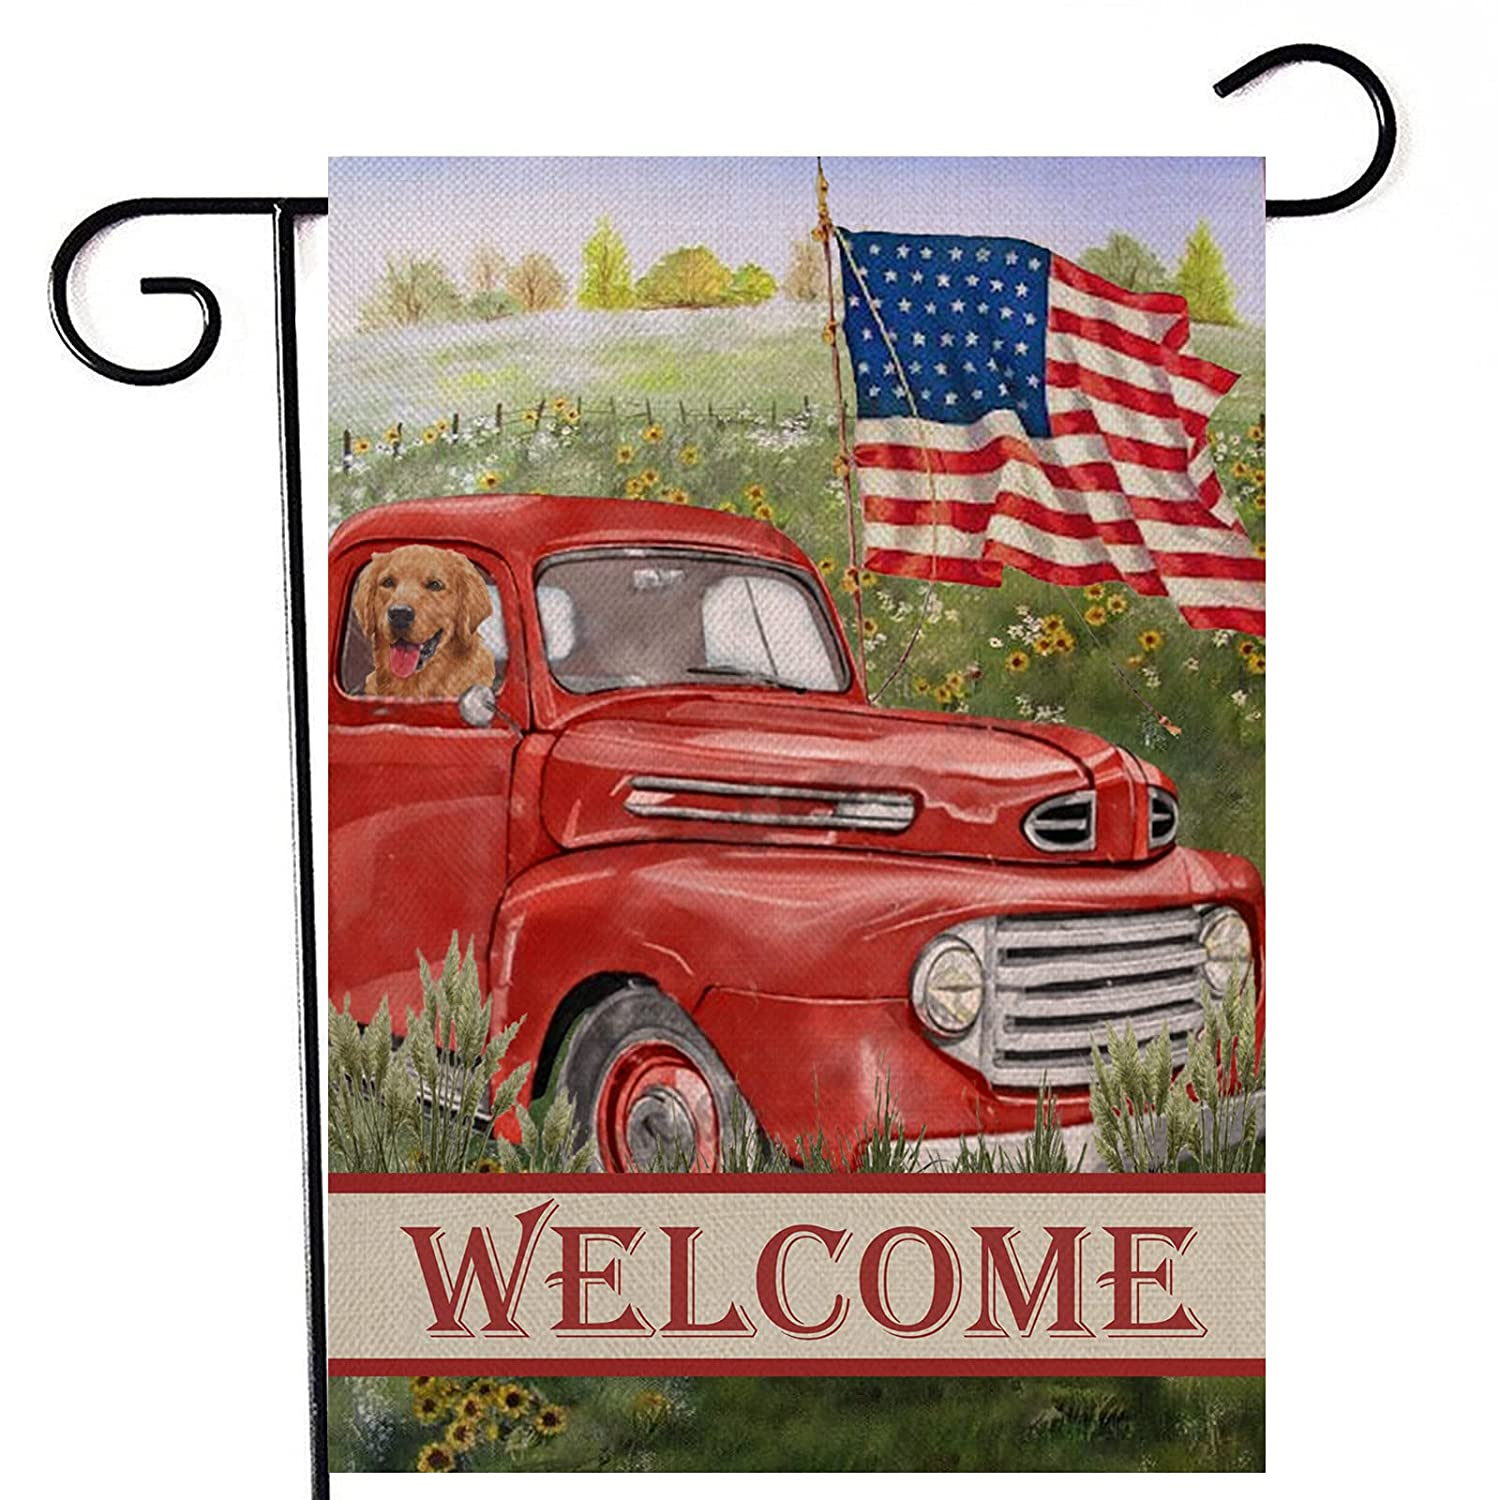 Artofy Welcome Summer Vintage Red Truck Decorative Garden Flag, House Yard Dog Sunflower Country Decor Outdoor Small USA Patriotic Flag Double Sided, American July 4th Home Outside Decoration 12 x 18